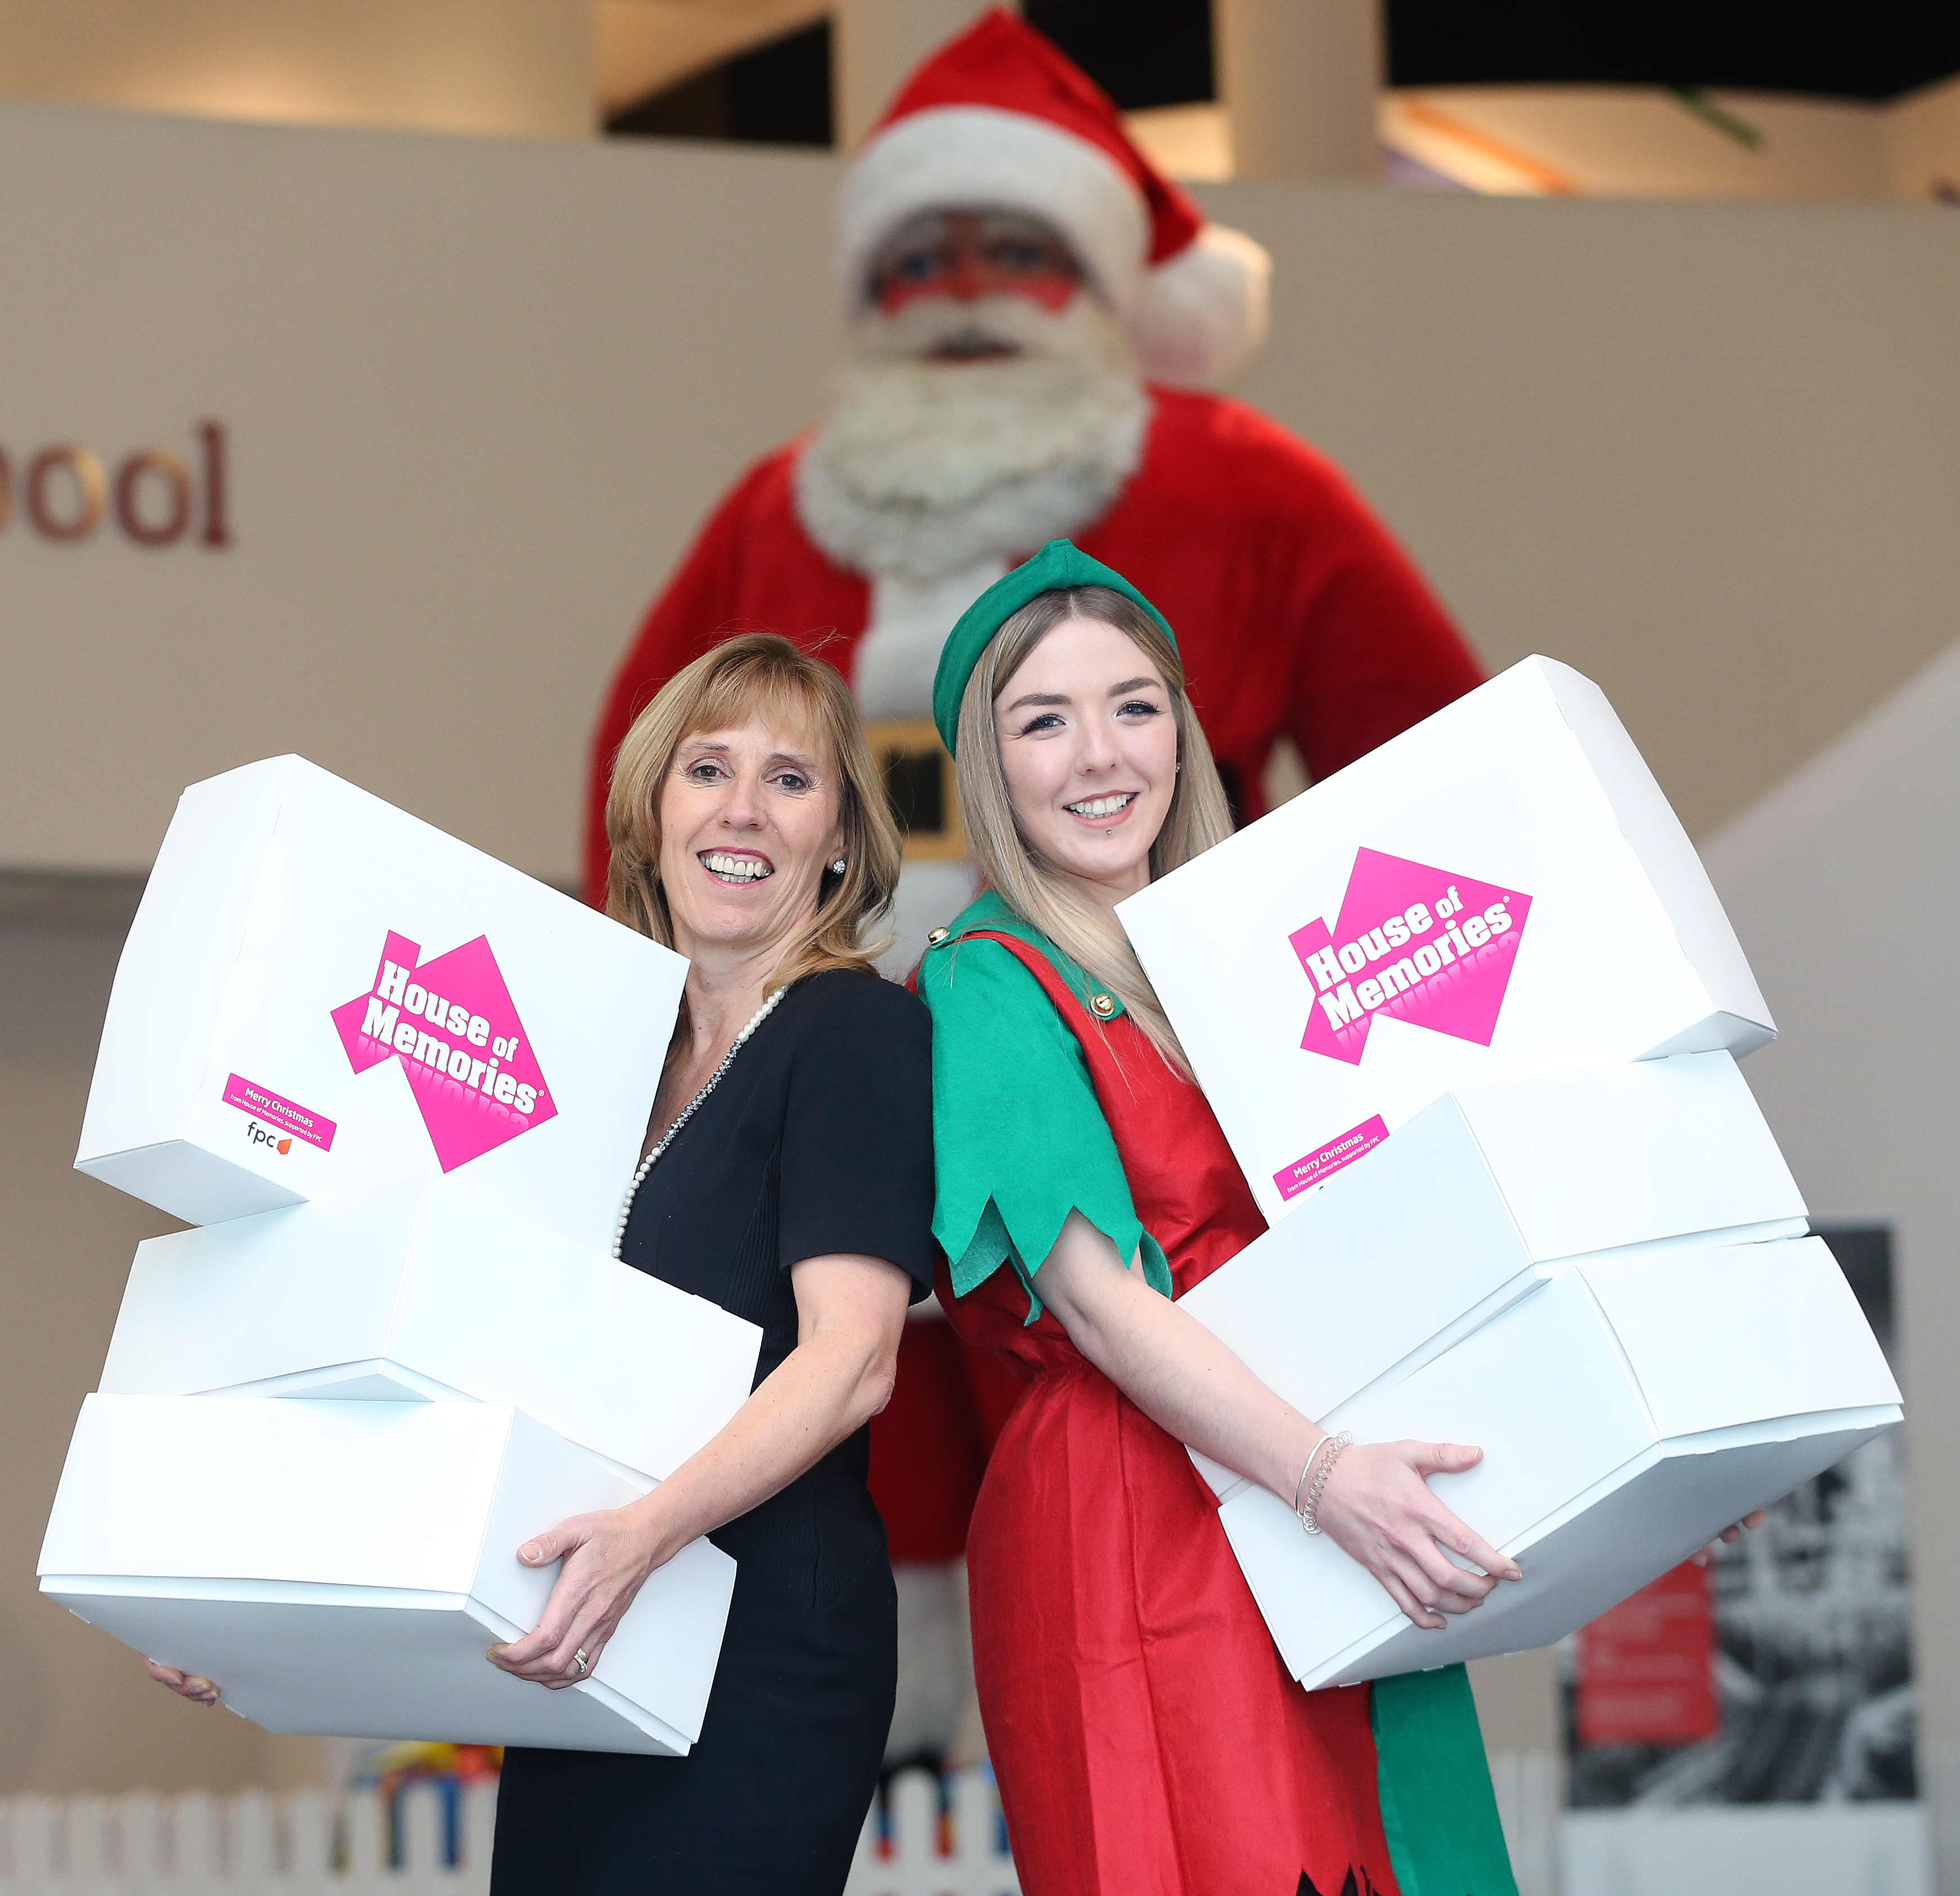 Blackler's giant Santa at the Museum of Liverpool overlooks two of Santa's elves carrying House of Memories Christmas-themed memory boxes